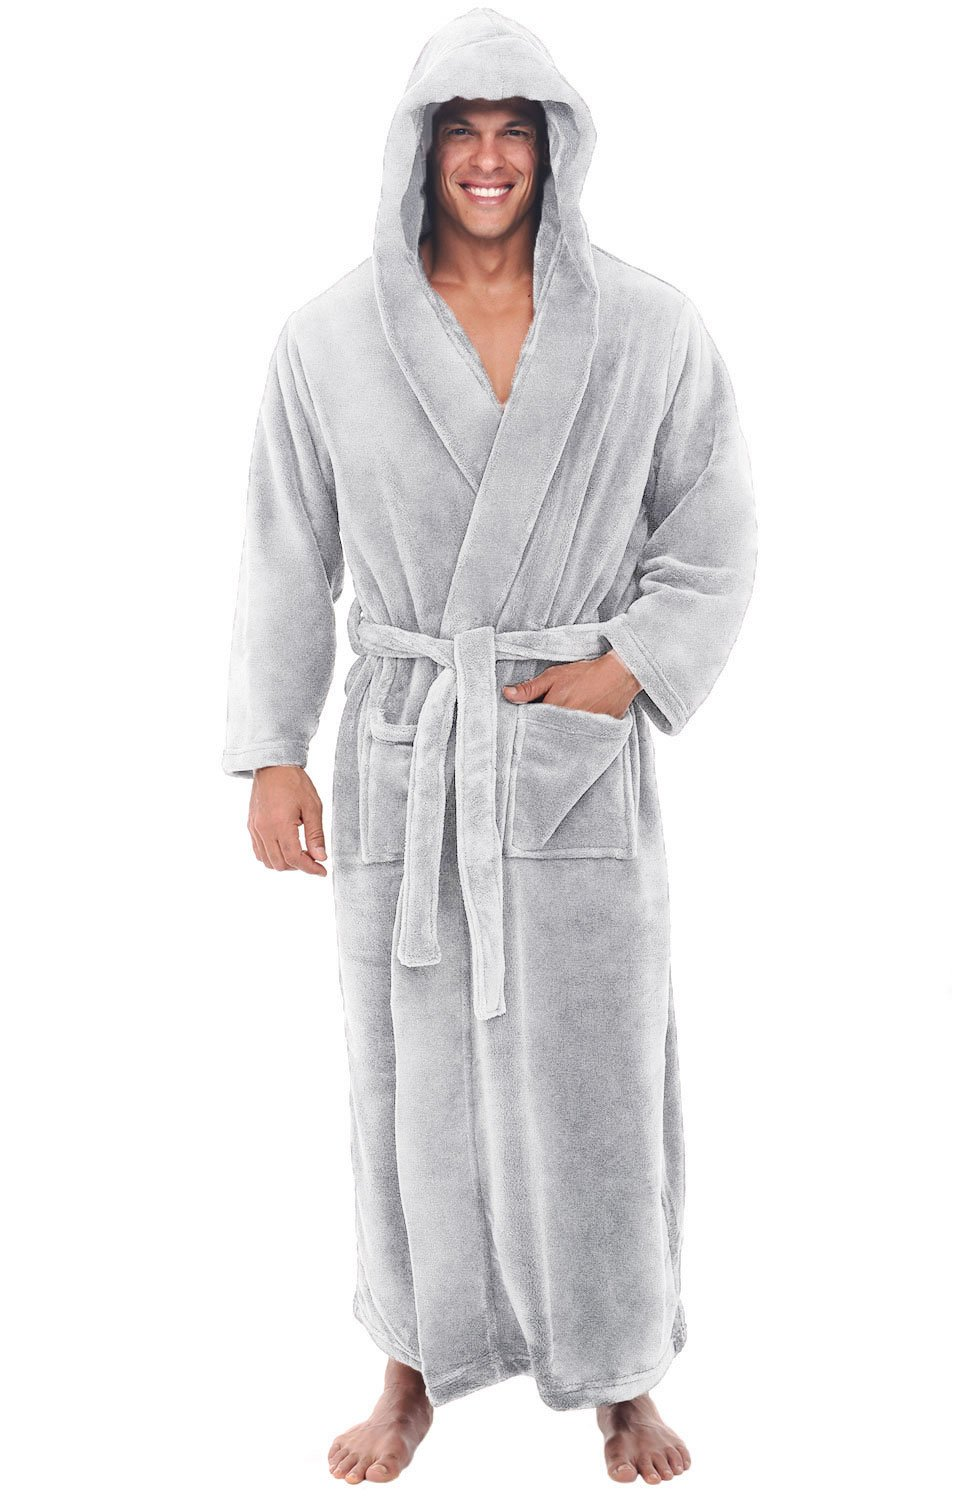 Alexander Del Rossa Mens Fleece Robe, Long Hooded Bathrobe, Small Medium Light Grey (A0125LGRMD)